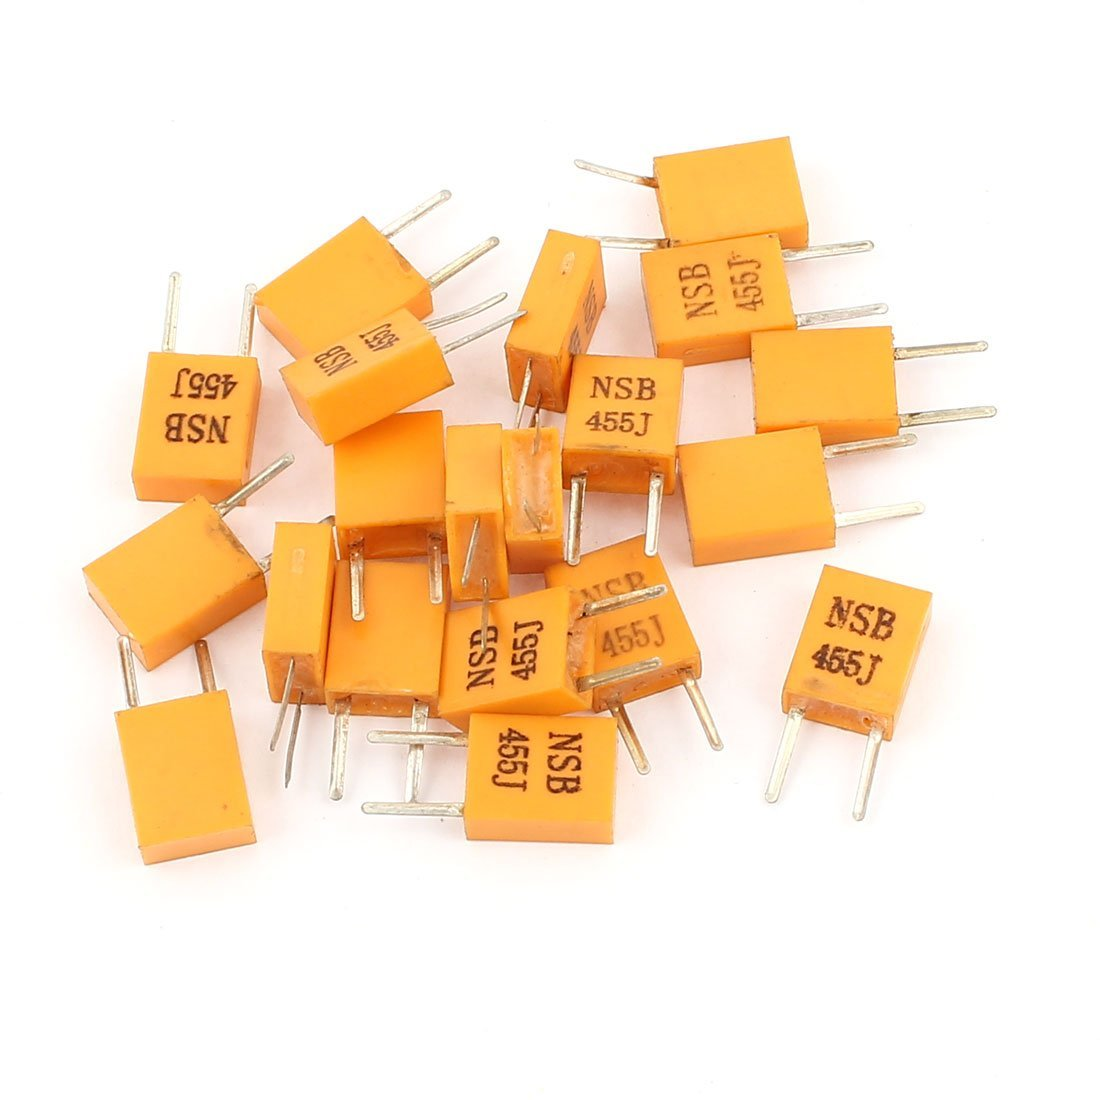 20 Pcs Radial Lead NSB 455J 455KHz Frequency Ceramic Crystal Resonator DealMux DLM-B00SWK0X84